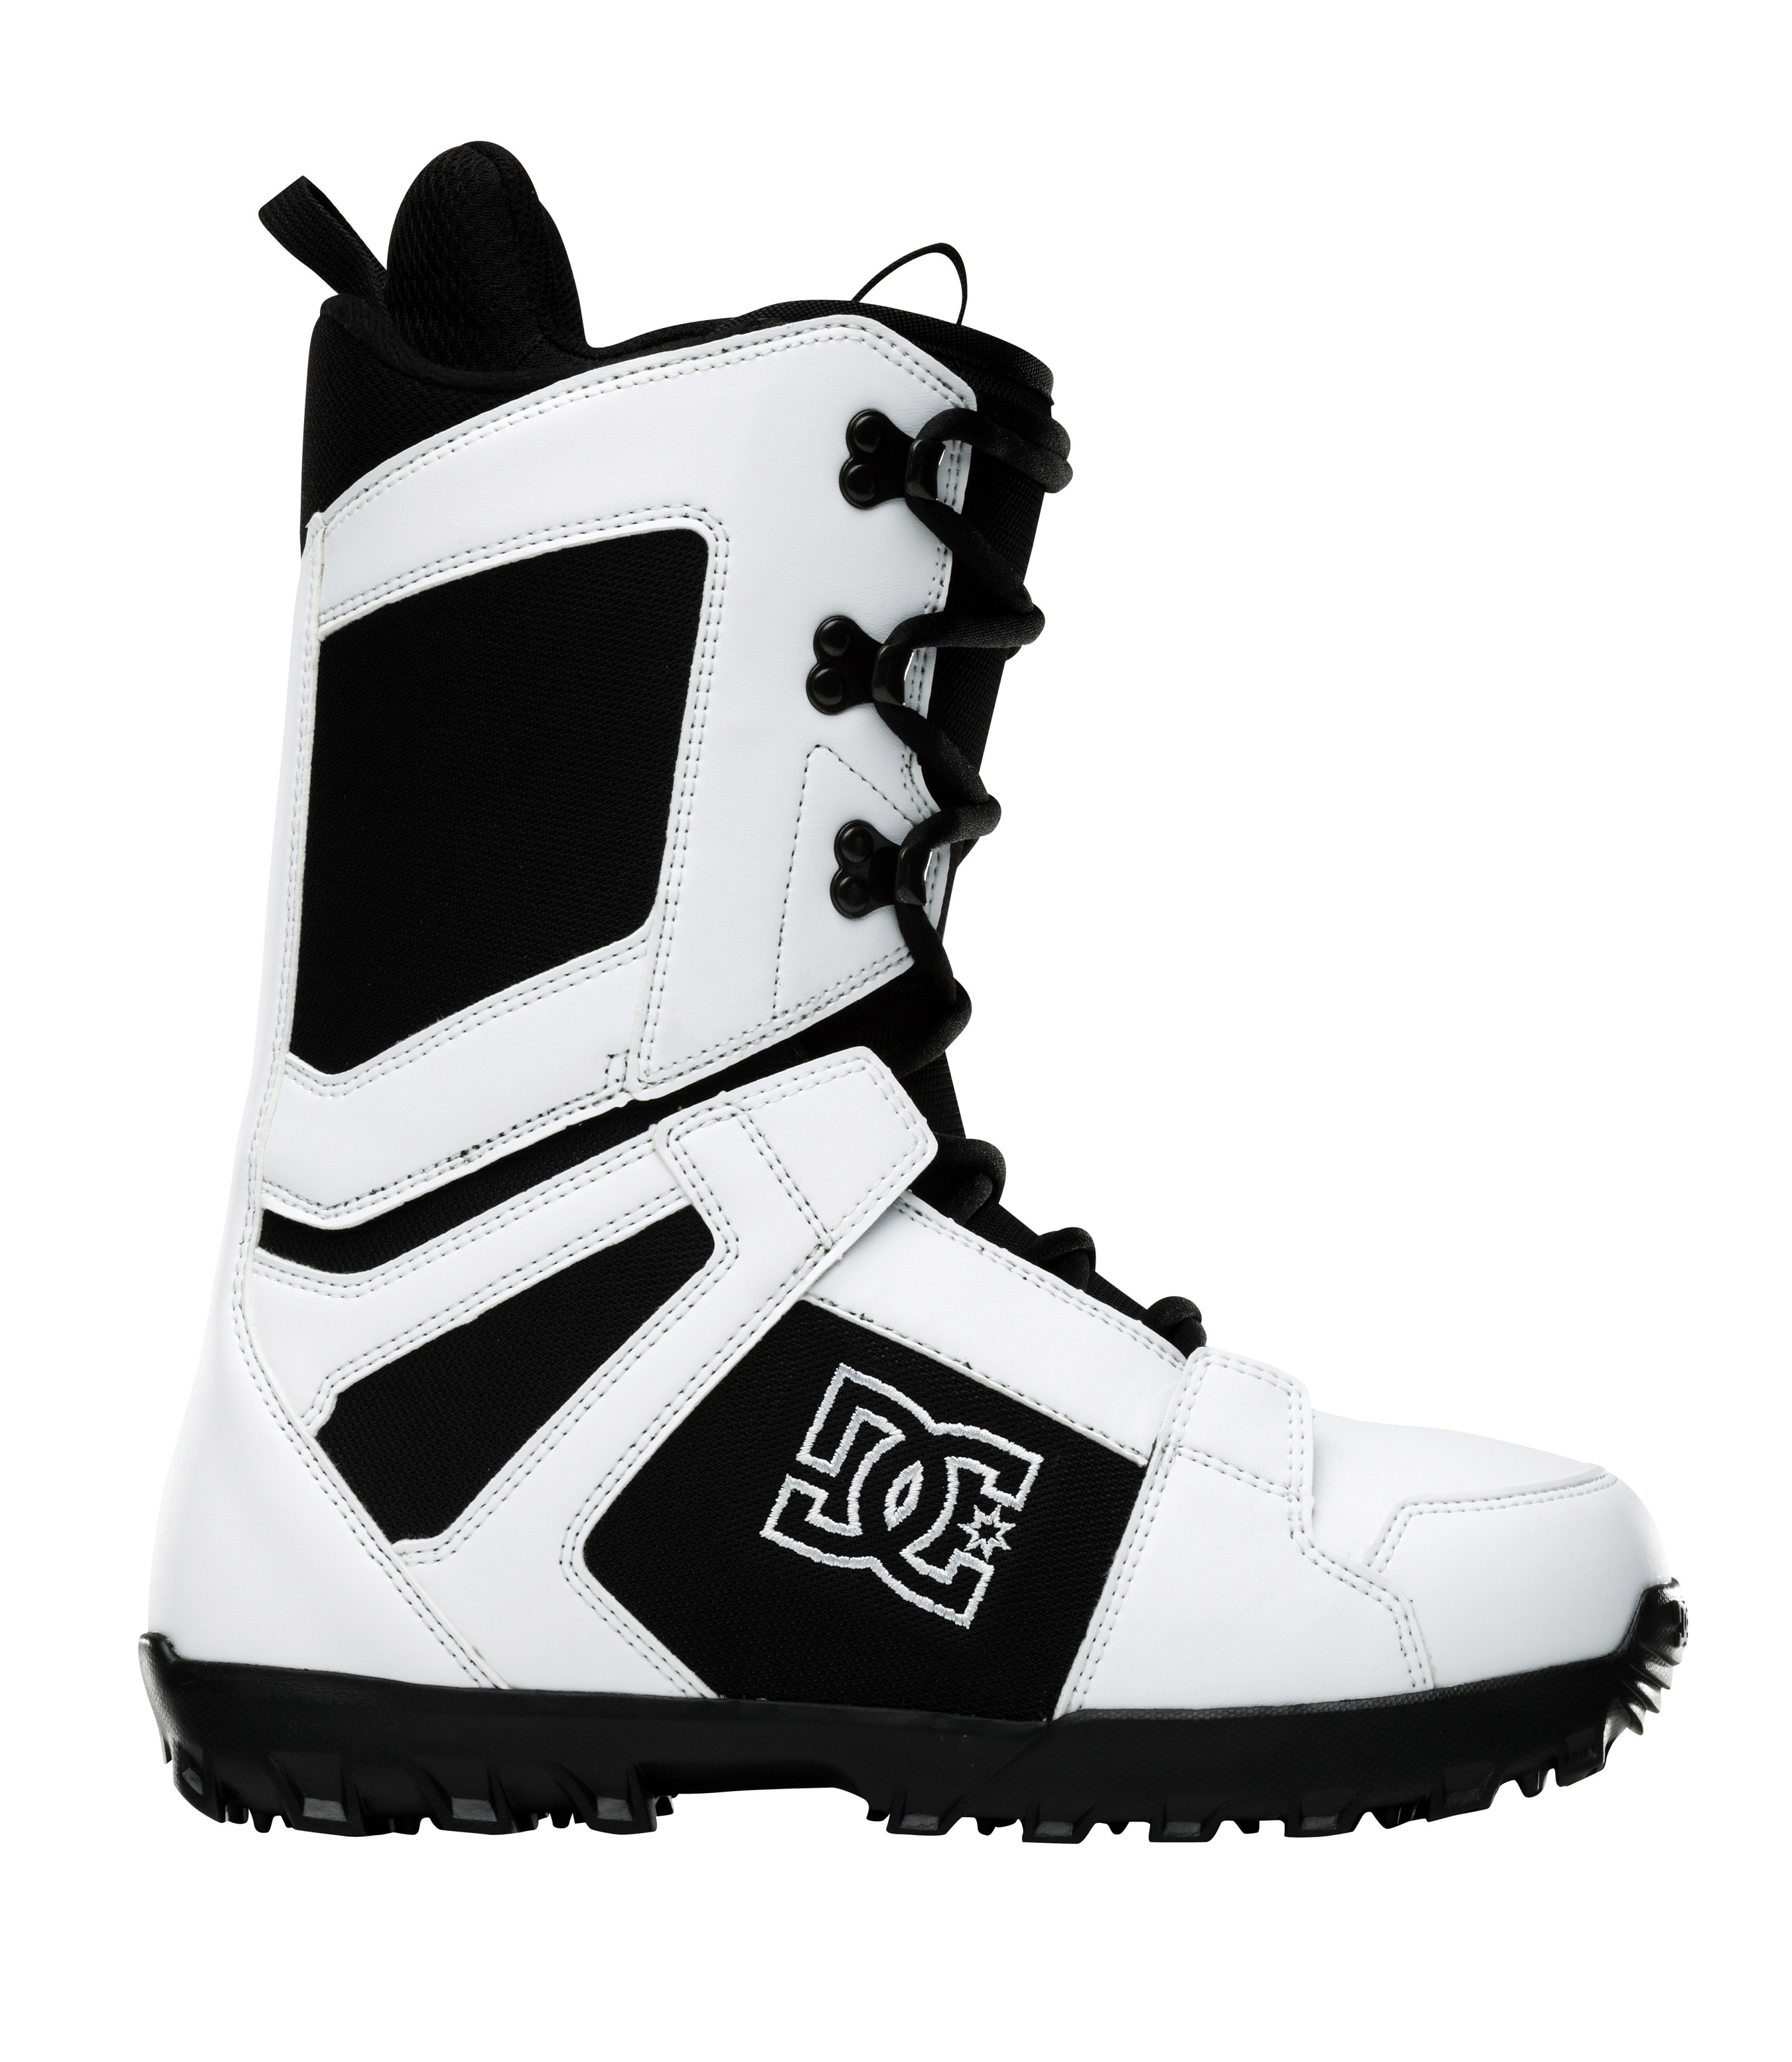 Snowboard A classic in the DC line, they've updated the Phase with new low profile, lightweight UNILITE outsole for better board feel and control.Key Features of the DC Phase Snowboard Boots: Direct power lacing Unilite Command liner Flex rating: 5 - $83.95